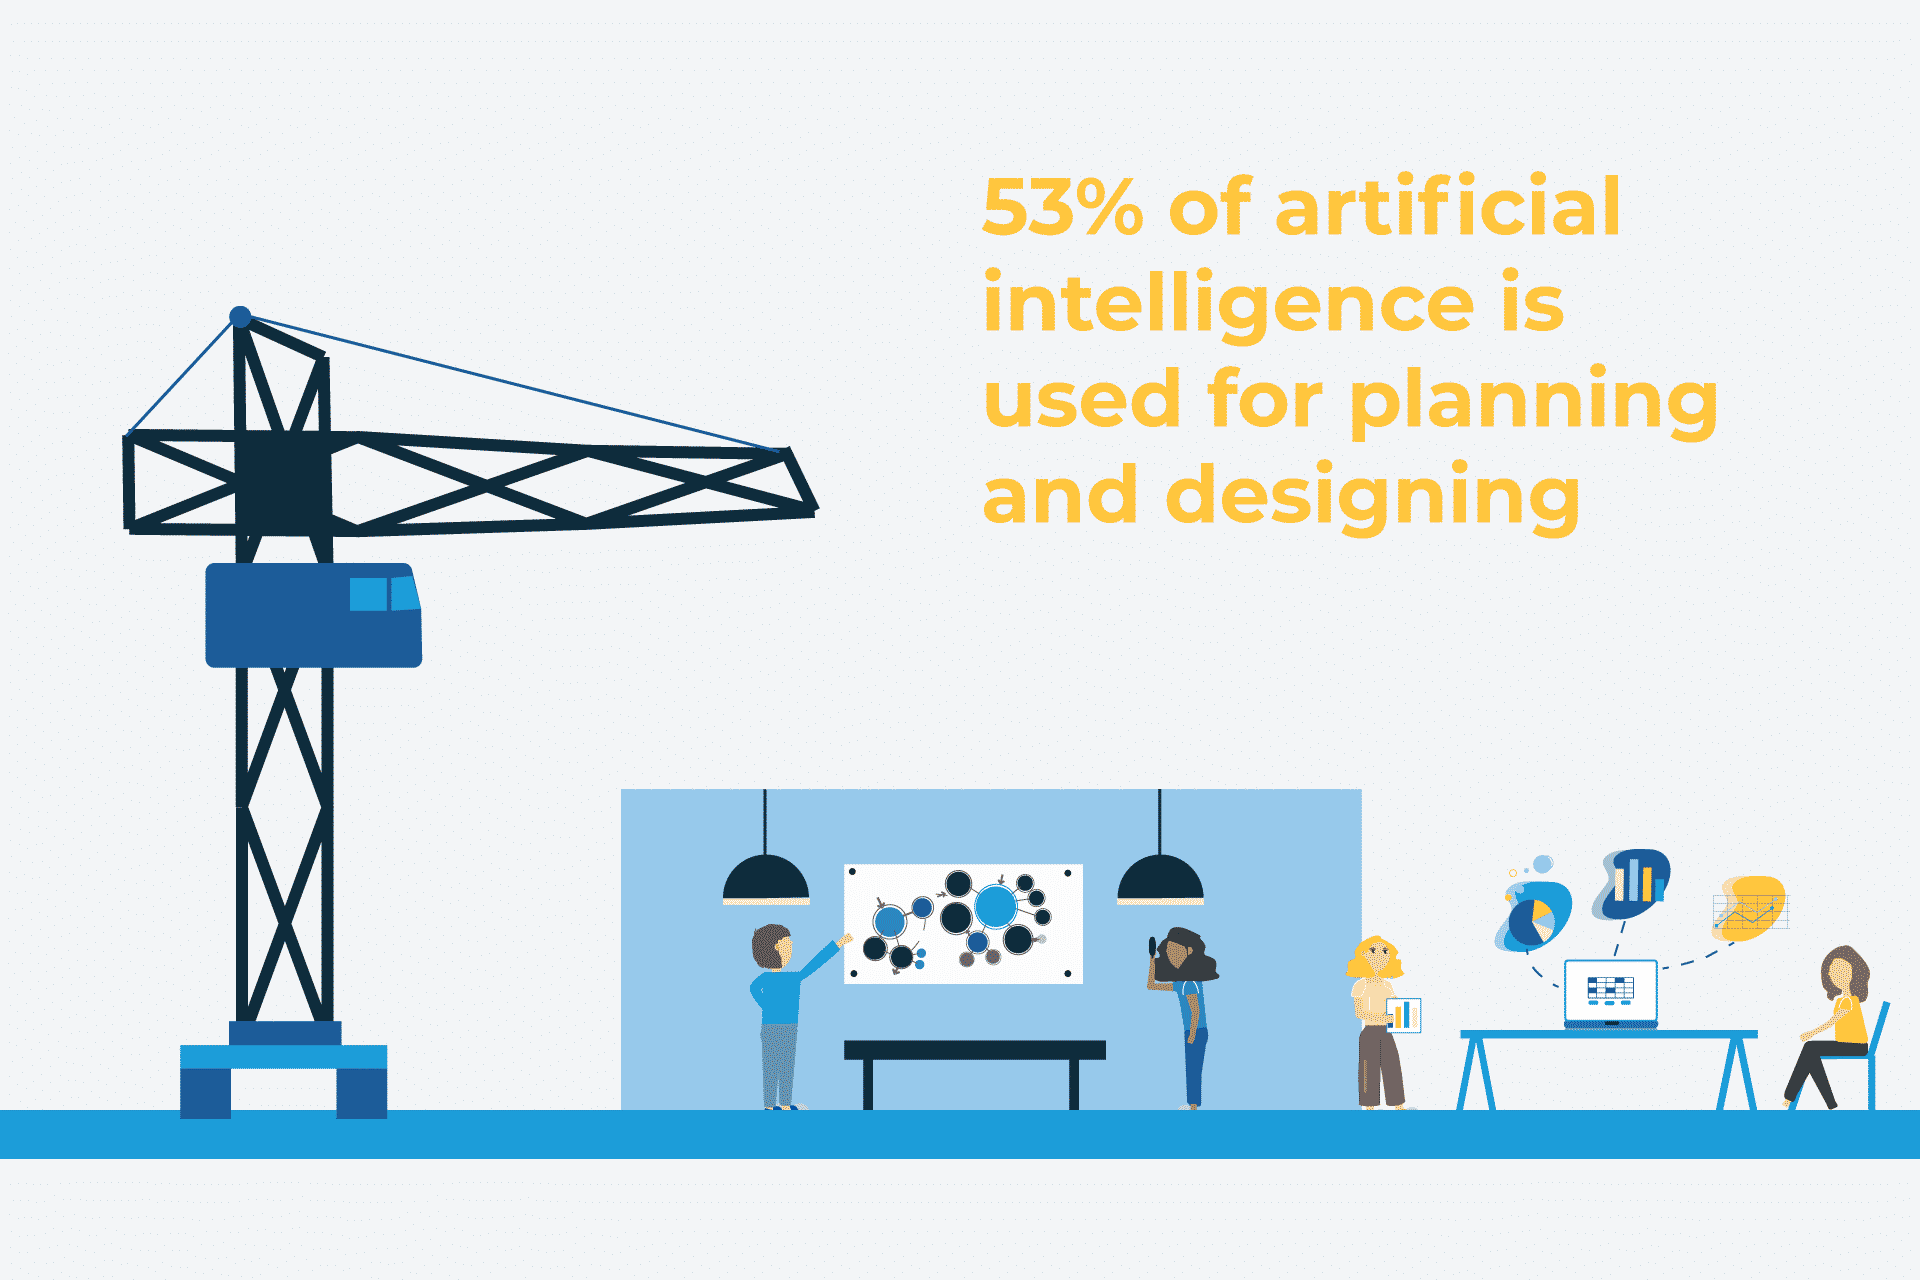 53% of artificial intelligence is used for planning and designing